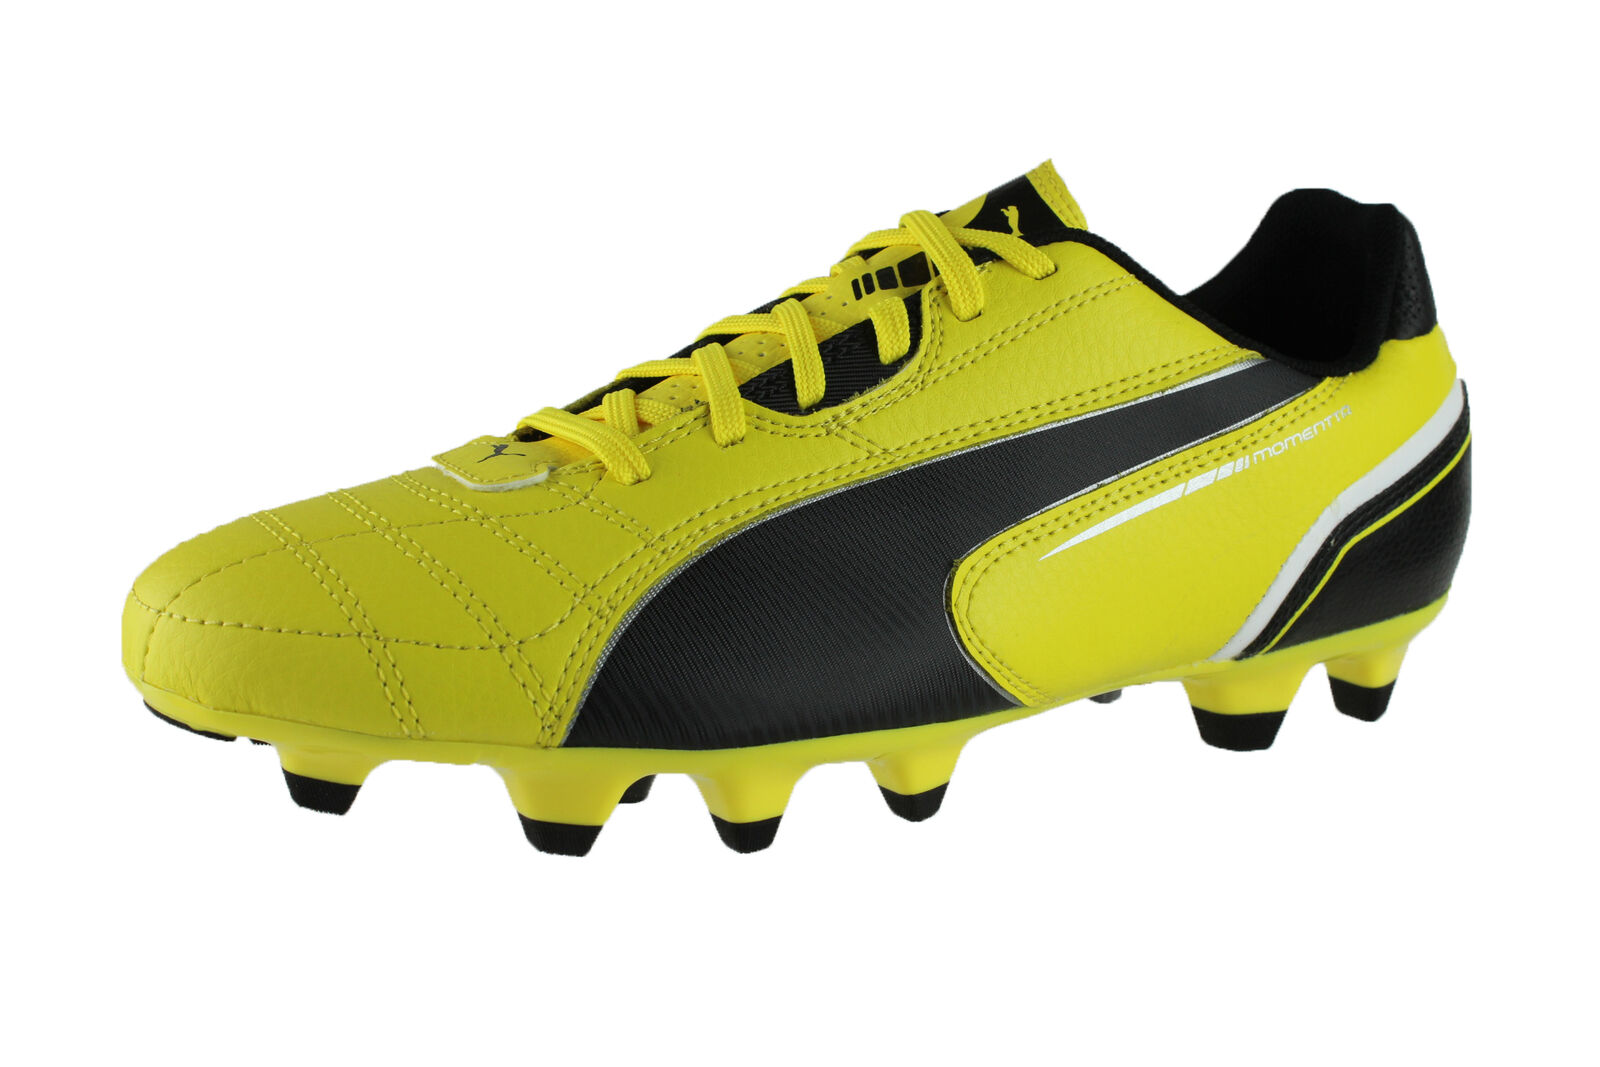 Puma Momentta Fg Jr Size 38 Football shoes Leather 102711 01 Yellow